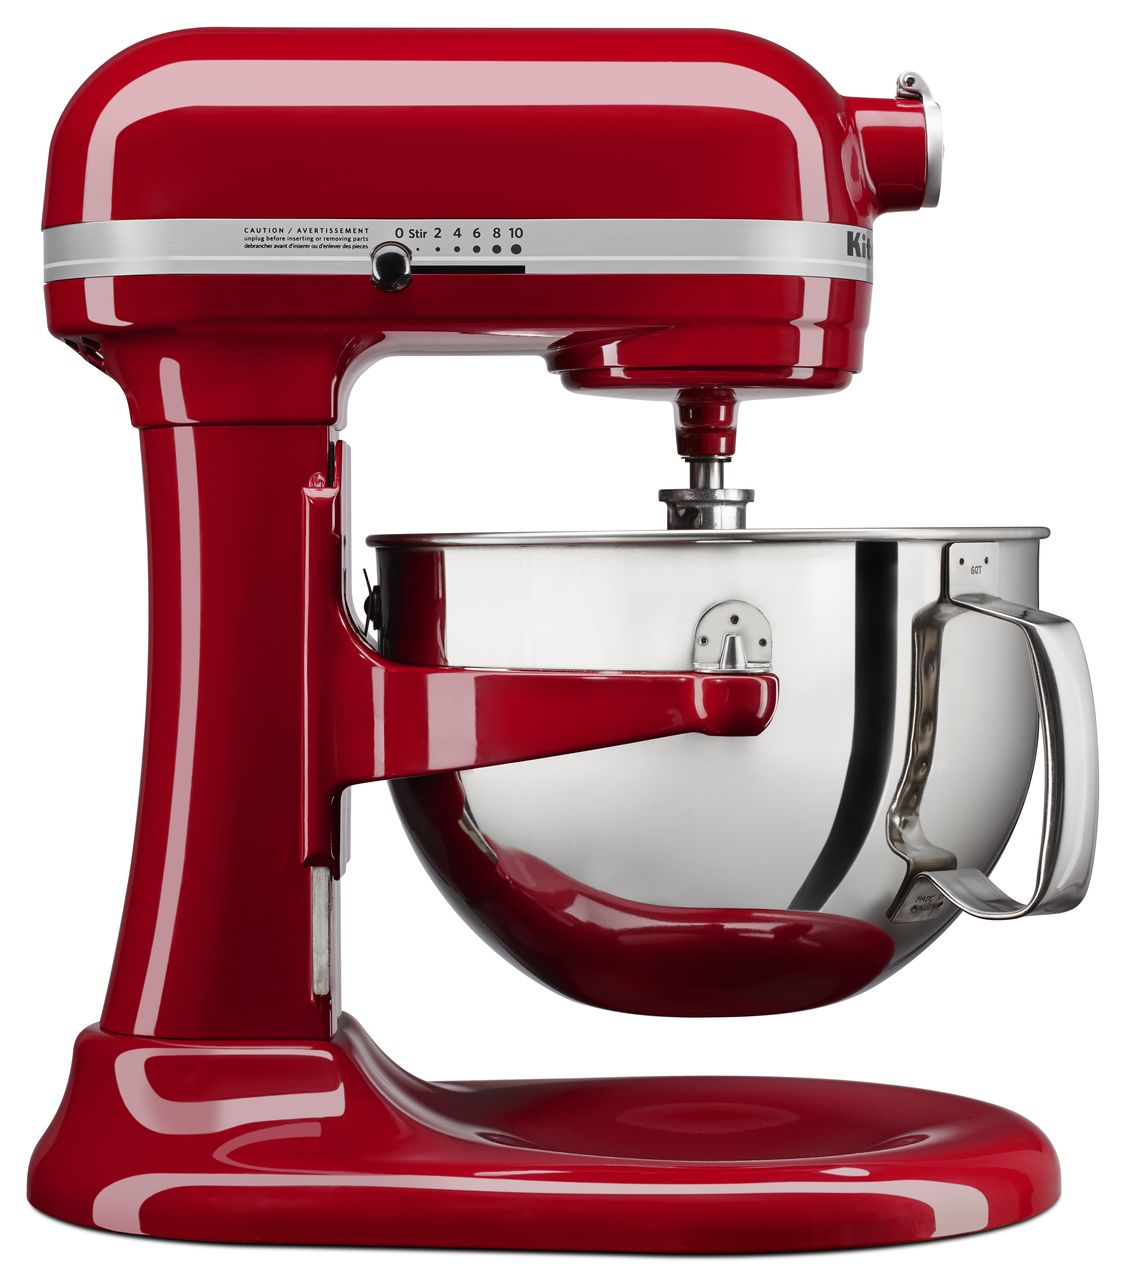 100 how many quarts is my kitchenaid mixer 600